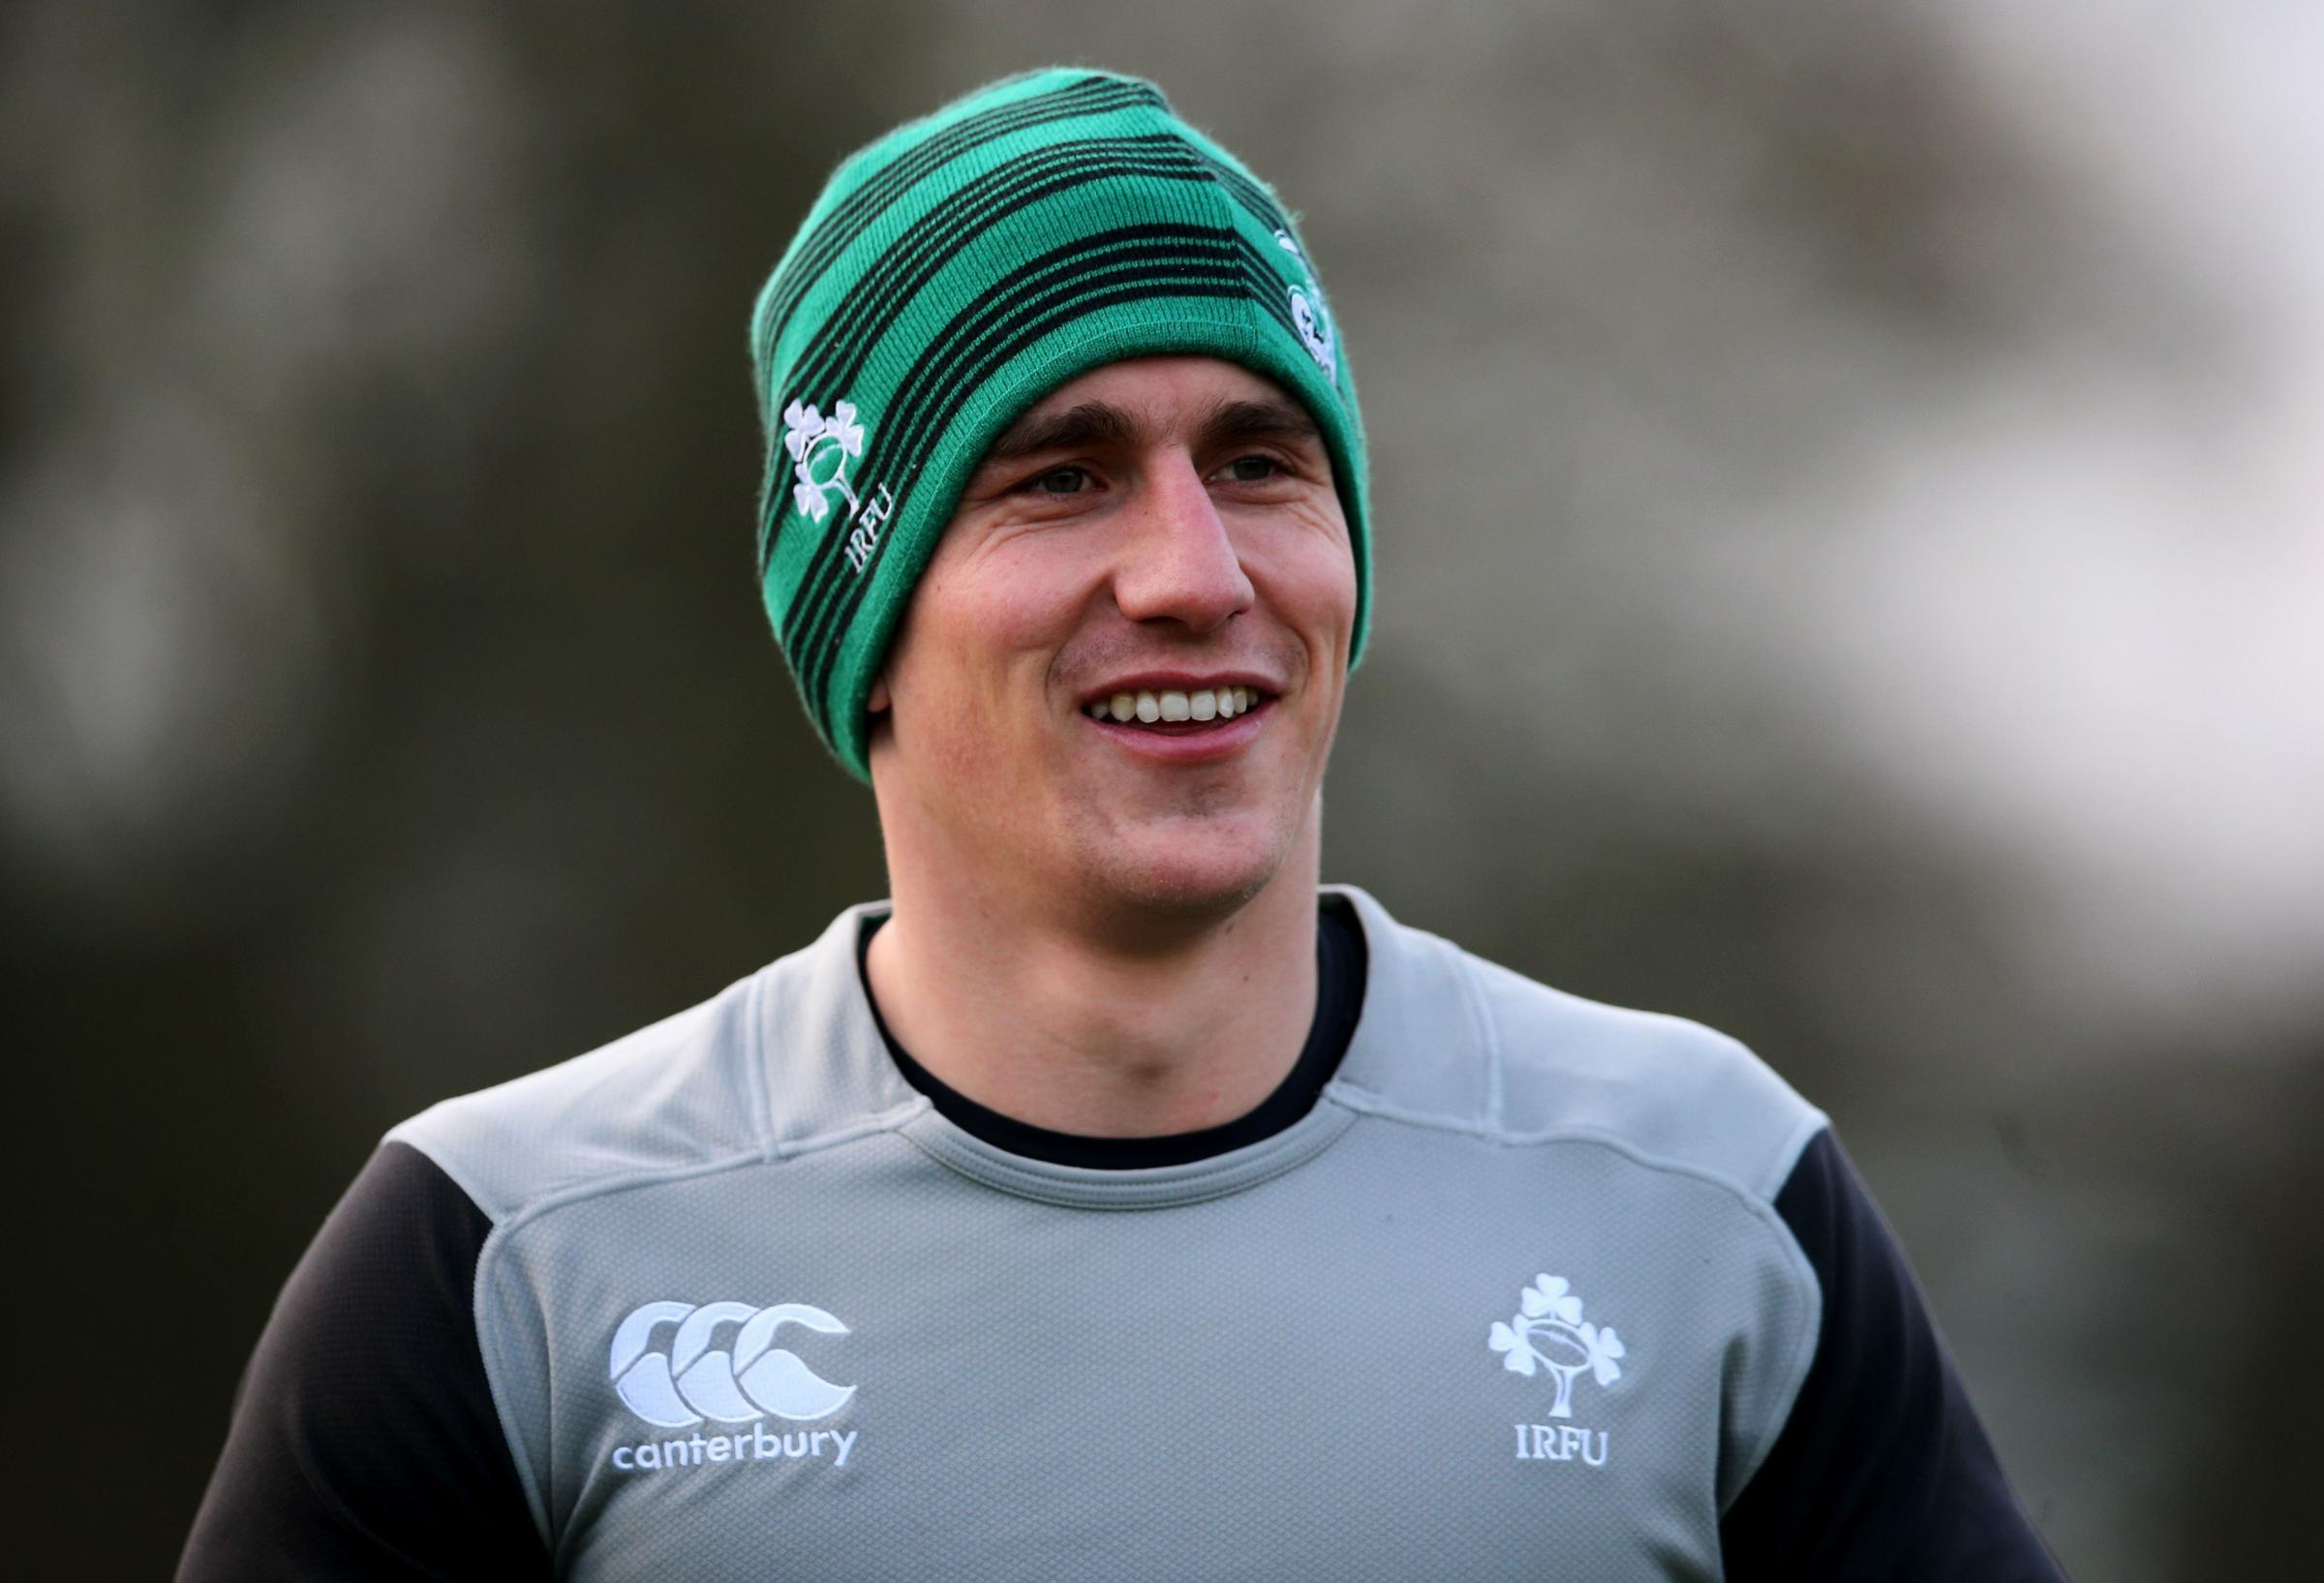 Ireland's Ian Keatley during training at Carton House, Co. Kildare, Ireland. PRESS ASSOCIATION Photo. Picture date: Thursday February 5, 2015. See PA story RUGBYU Ireland. Photo credit should read: Brian Lawless/PA Wire. RESTRICTIONS: Editorial use on